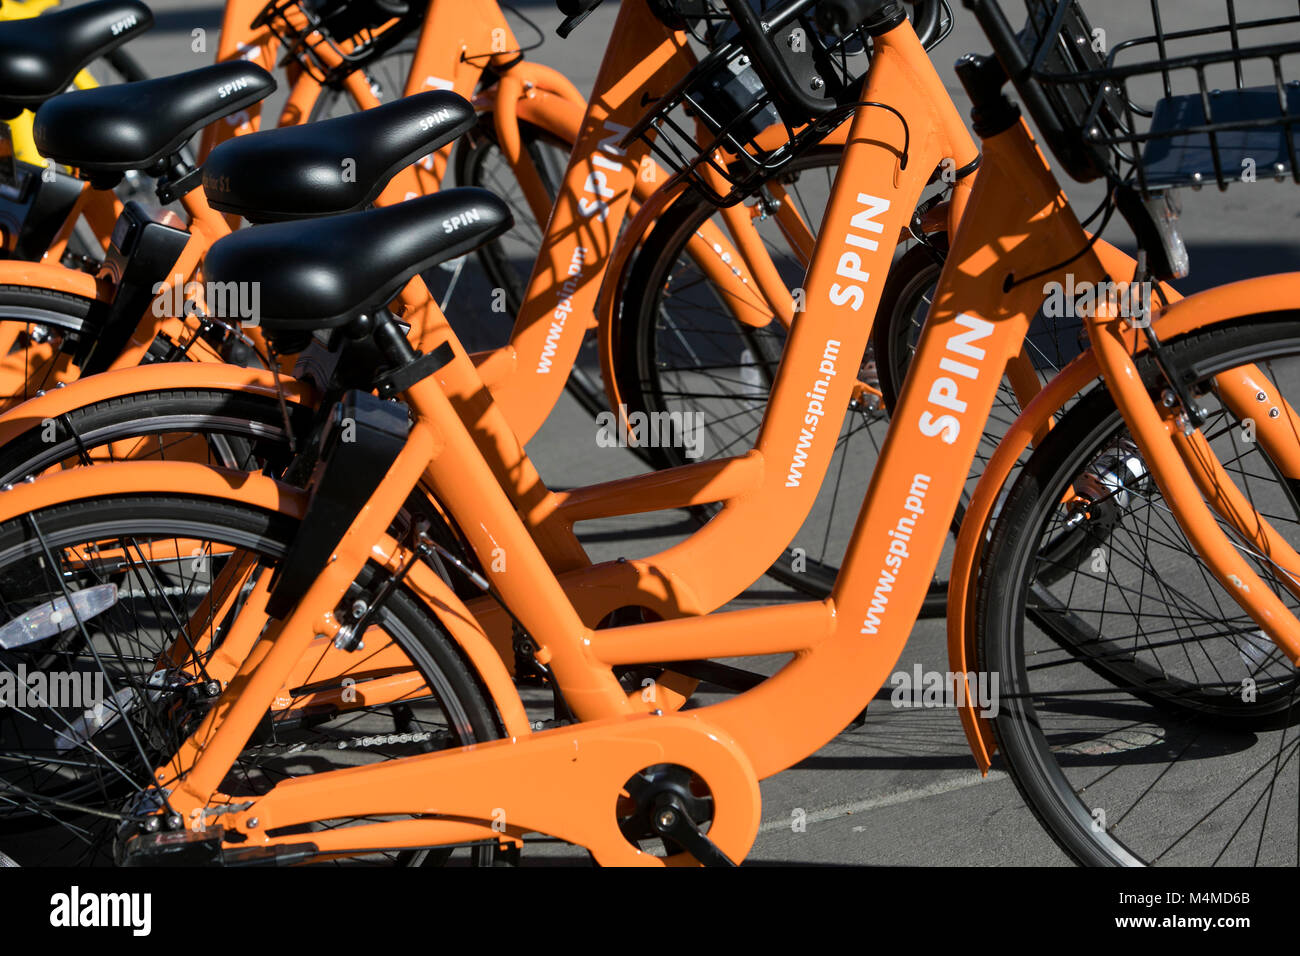 A row of Spin dock-less bicycle-sharing bikes in Tempe, Arizona, on February 3, 2018. - Stock Image